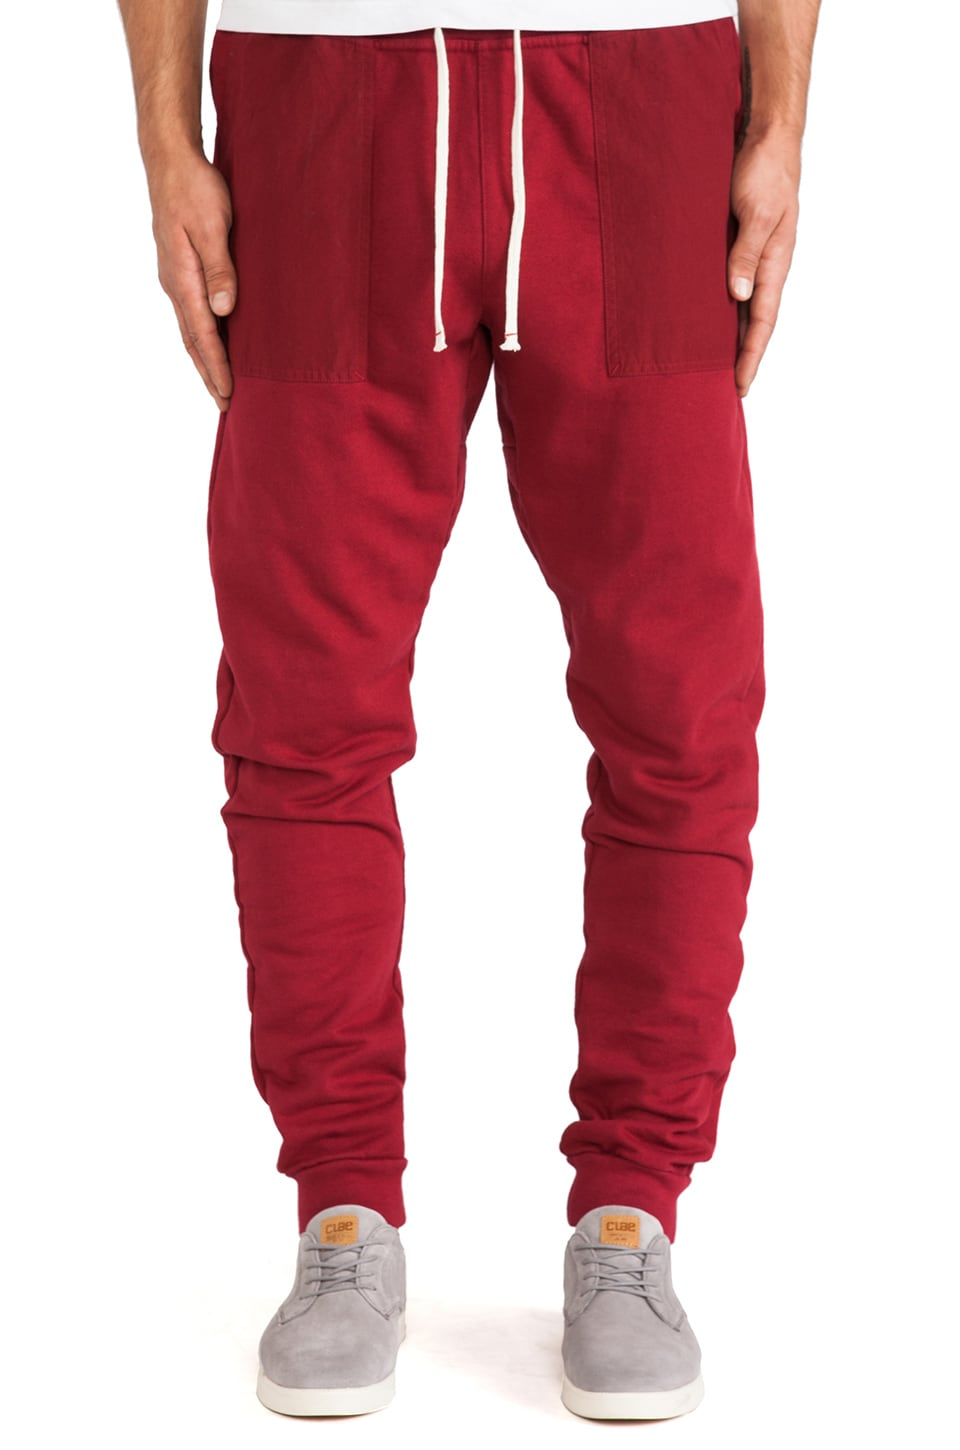 AXS Folk Technology AXS Sweat Cargo Pants in Deep Oxblood